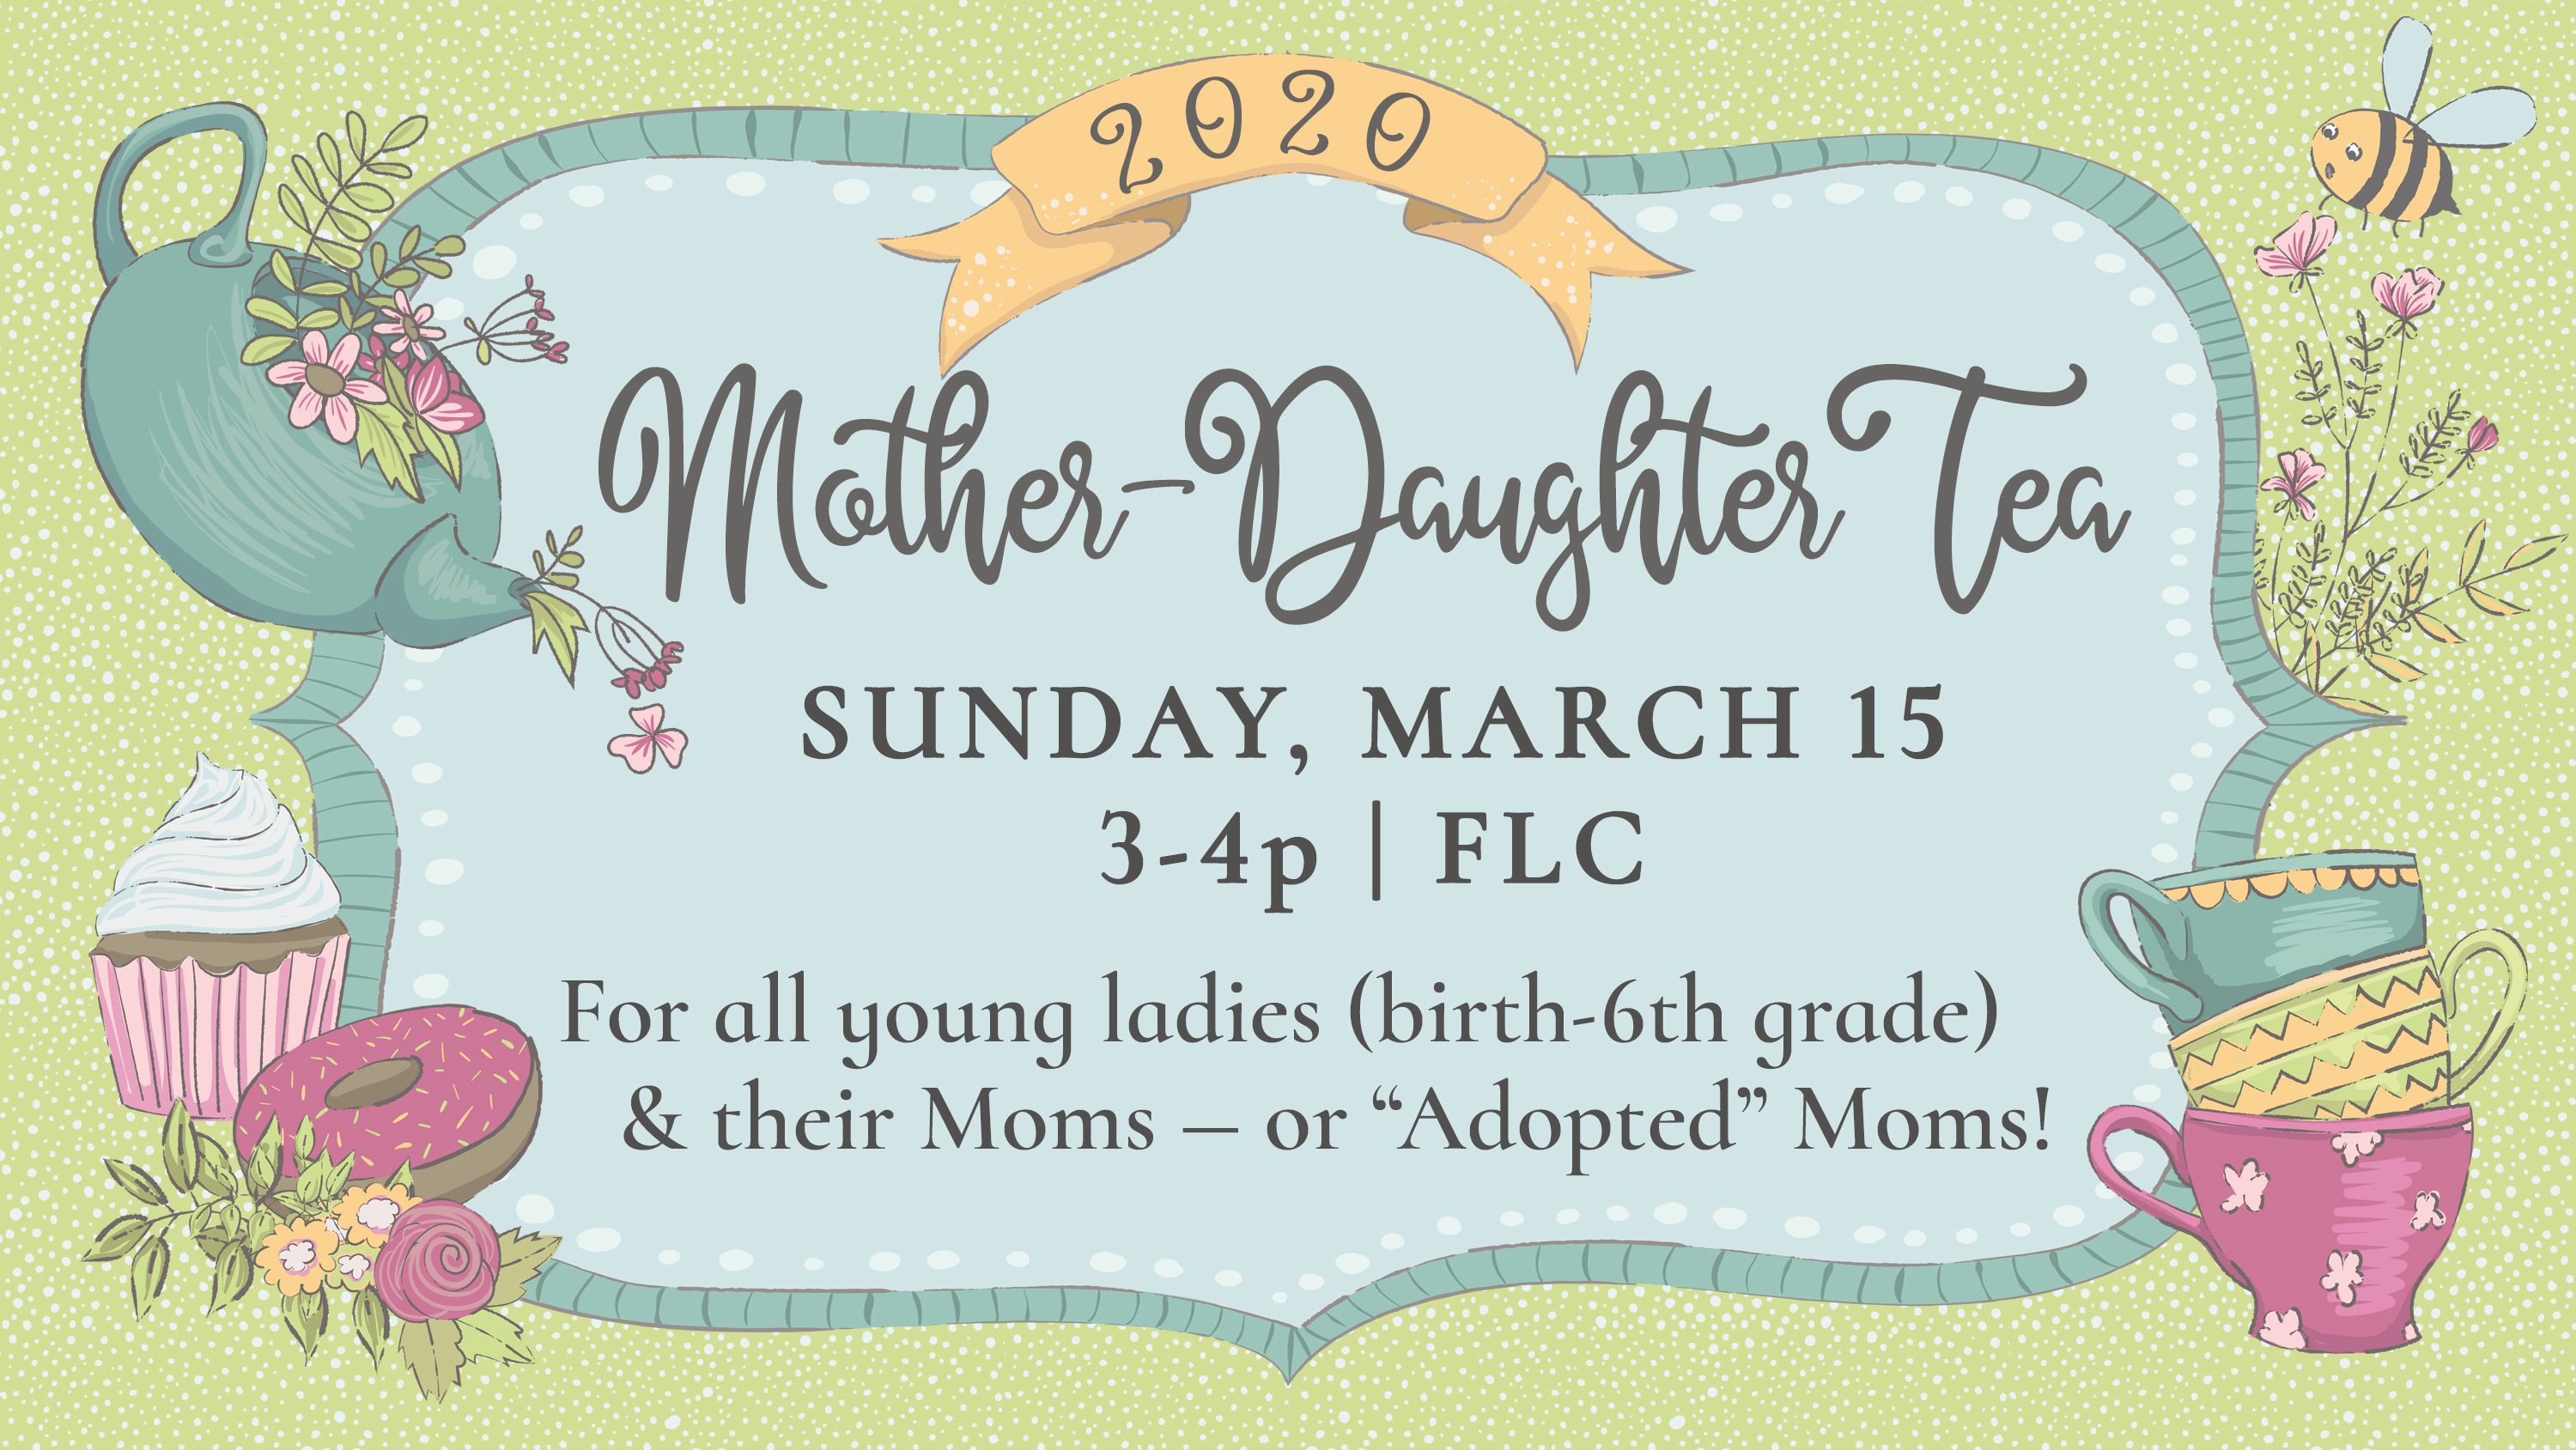 8  Mother Daughter Tea 2020 image